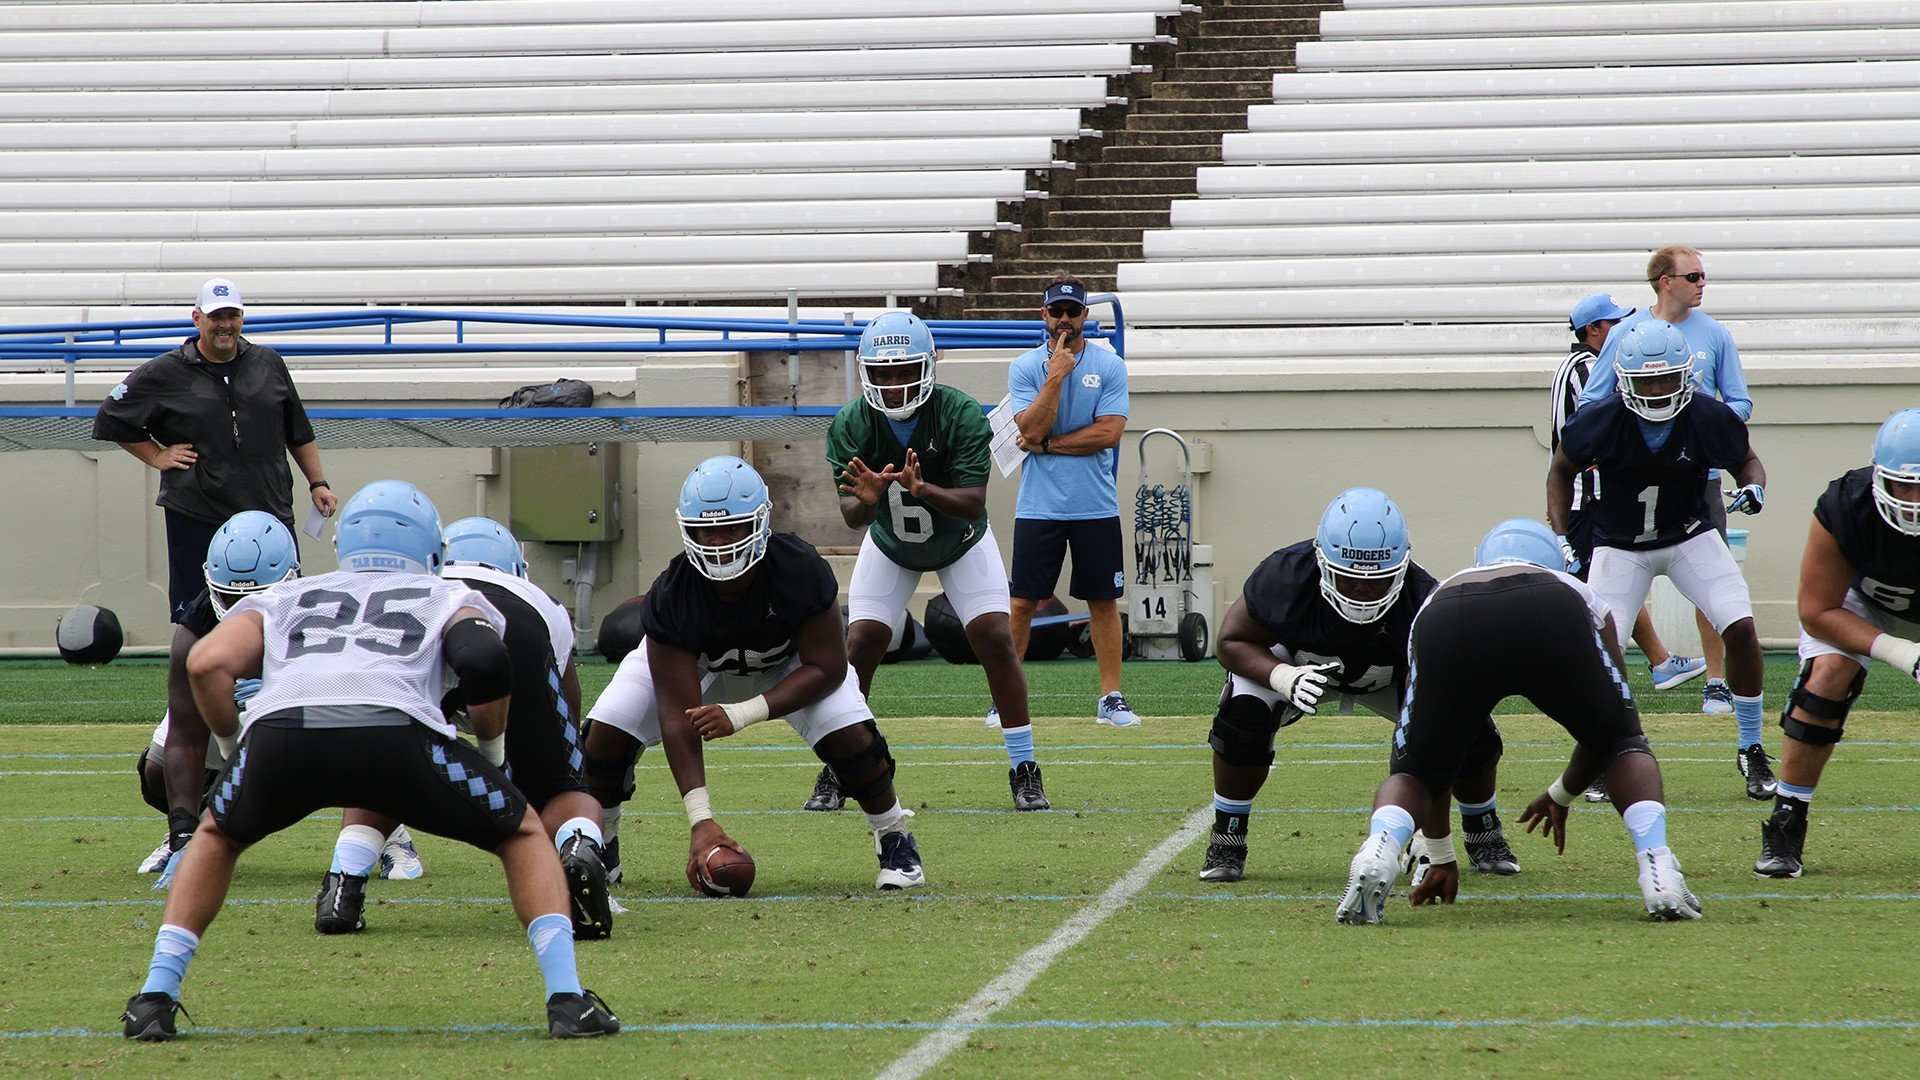 Goheels Exclusive Big Plays Define Second Scrimmage